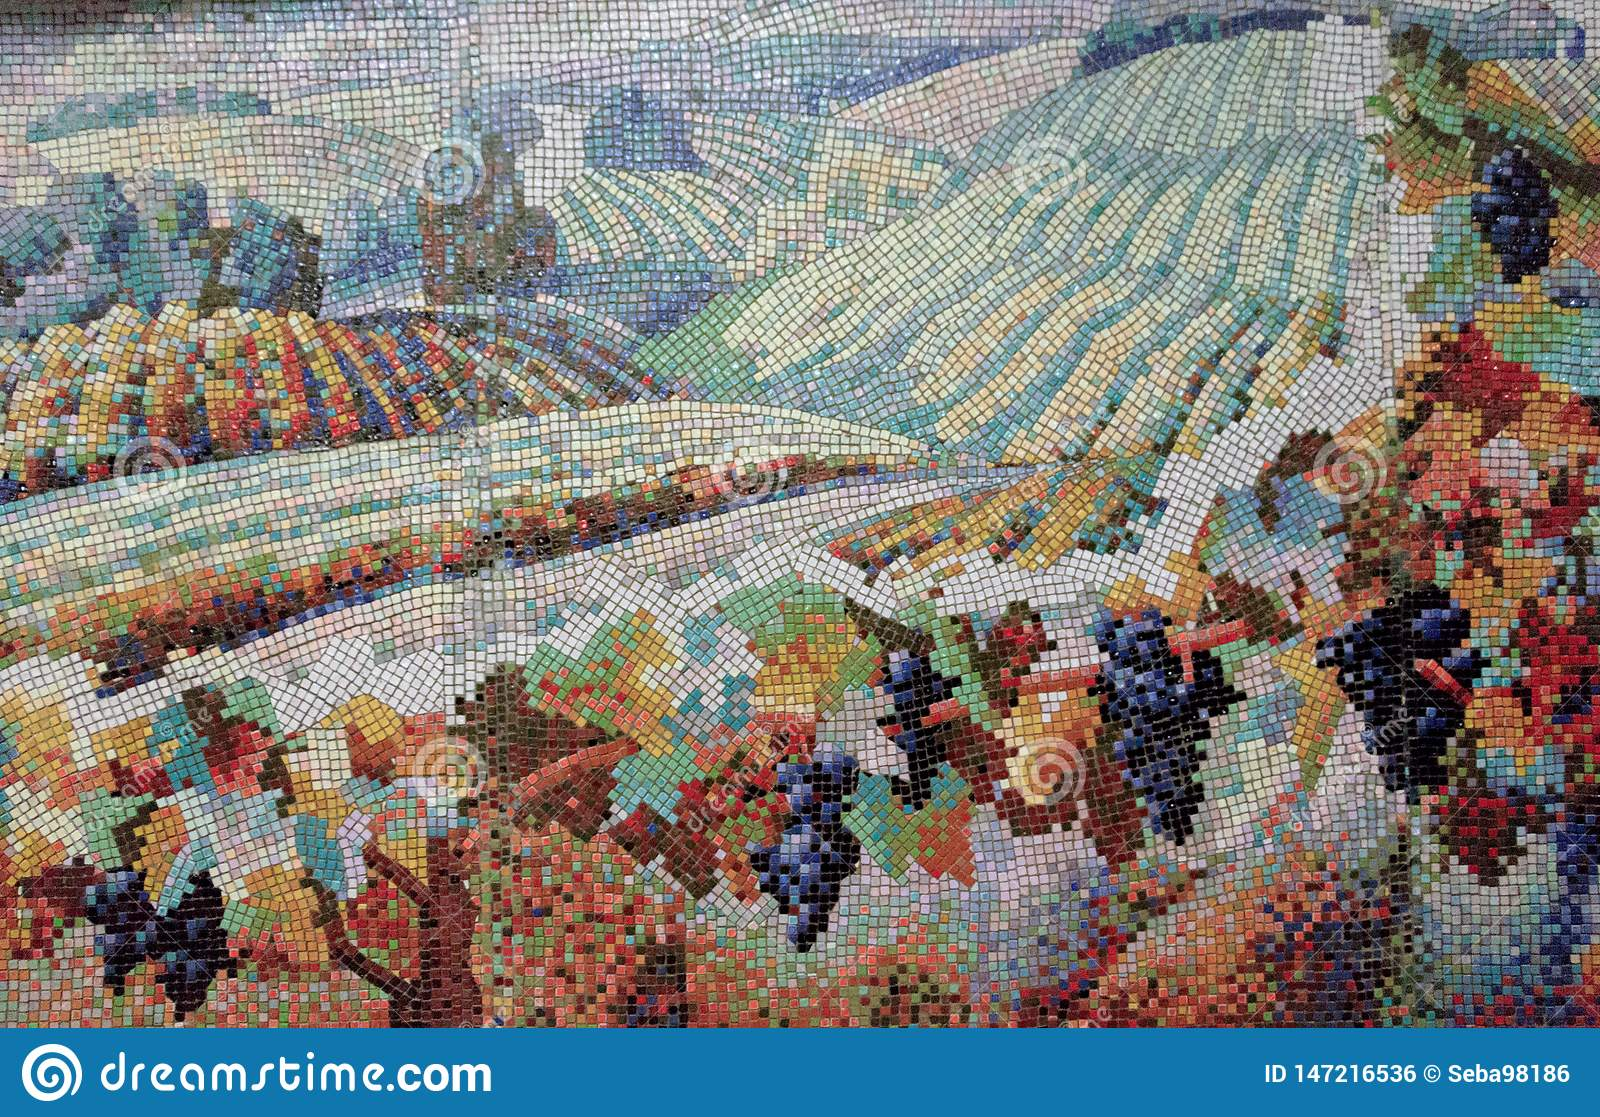 Mosaic painting of a field with vines